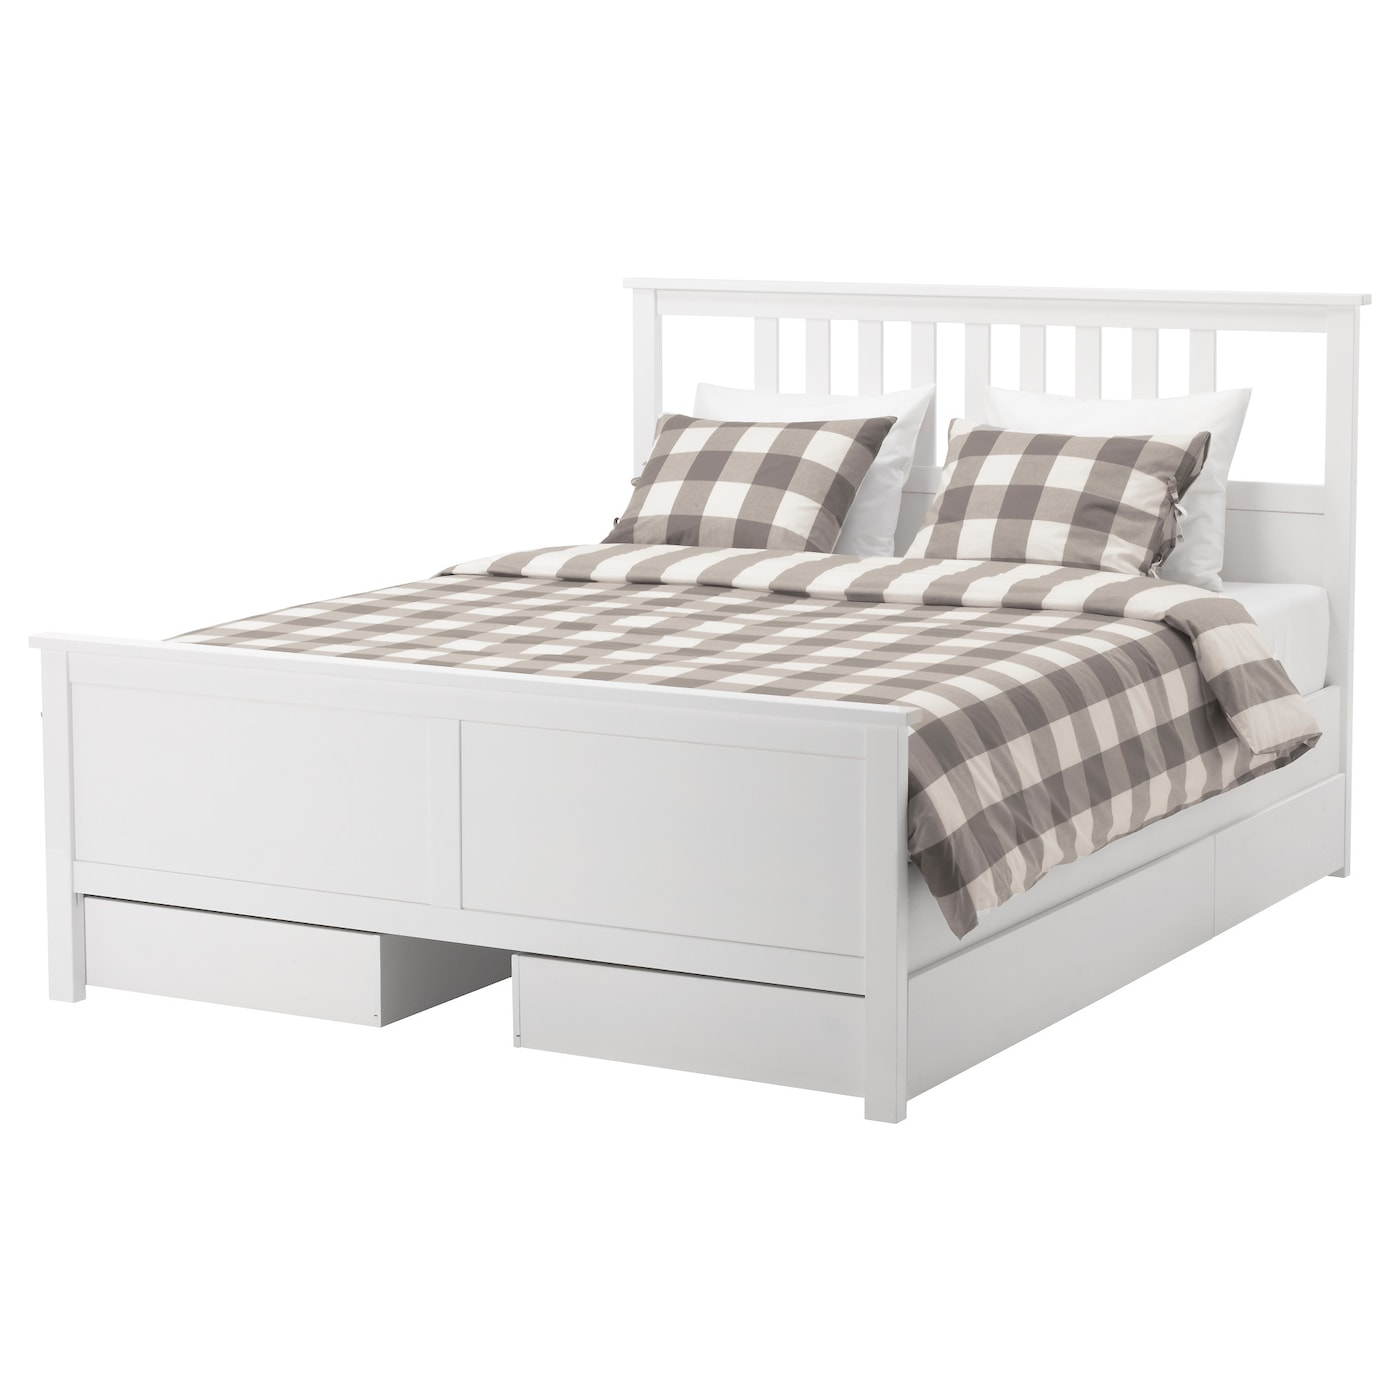 HEMNES Bed frame with 4 storage boxes White stainlury Standard